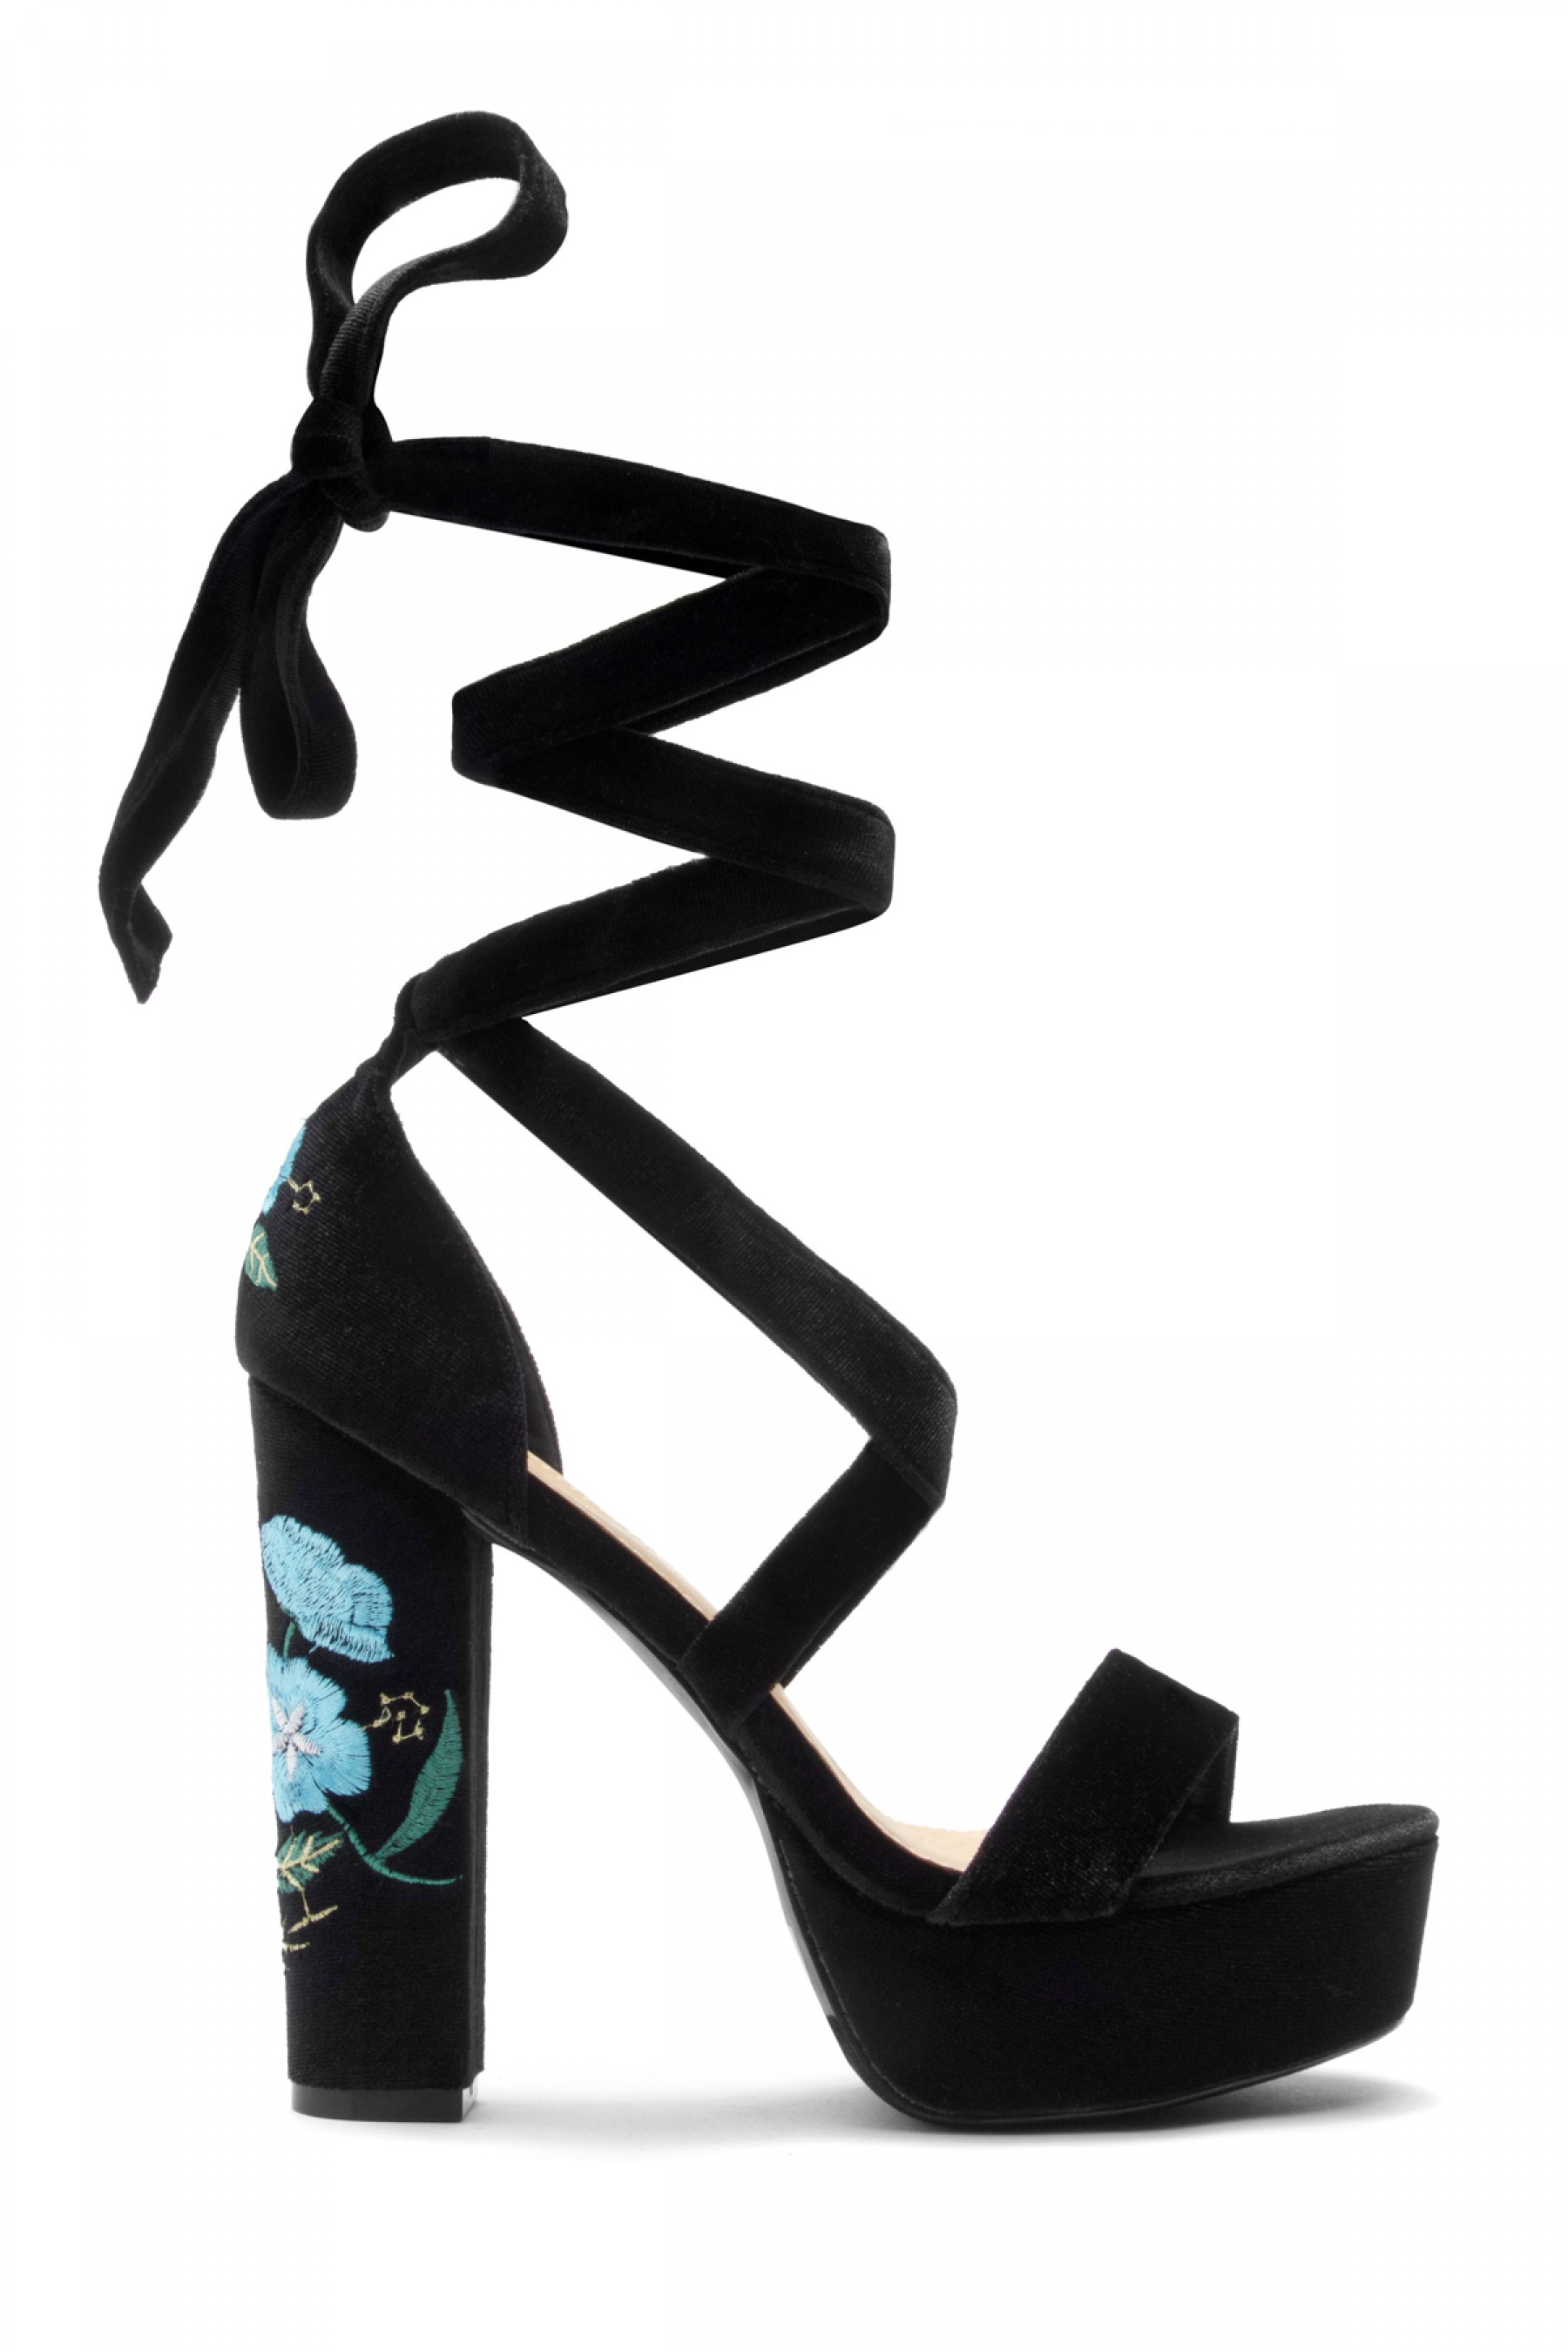 18ff6c24bec HerStyle Tryceee Blue Floral Lace up Platform Heel In Black Faux ...